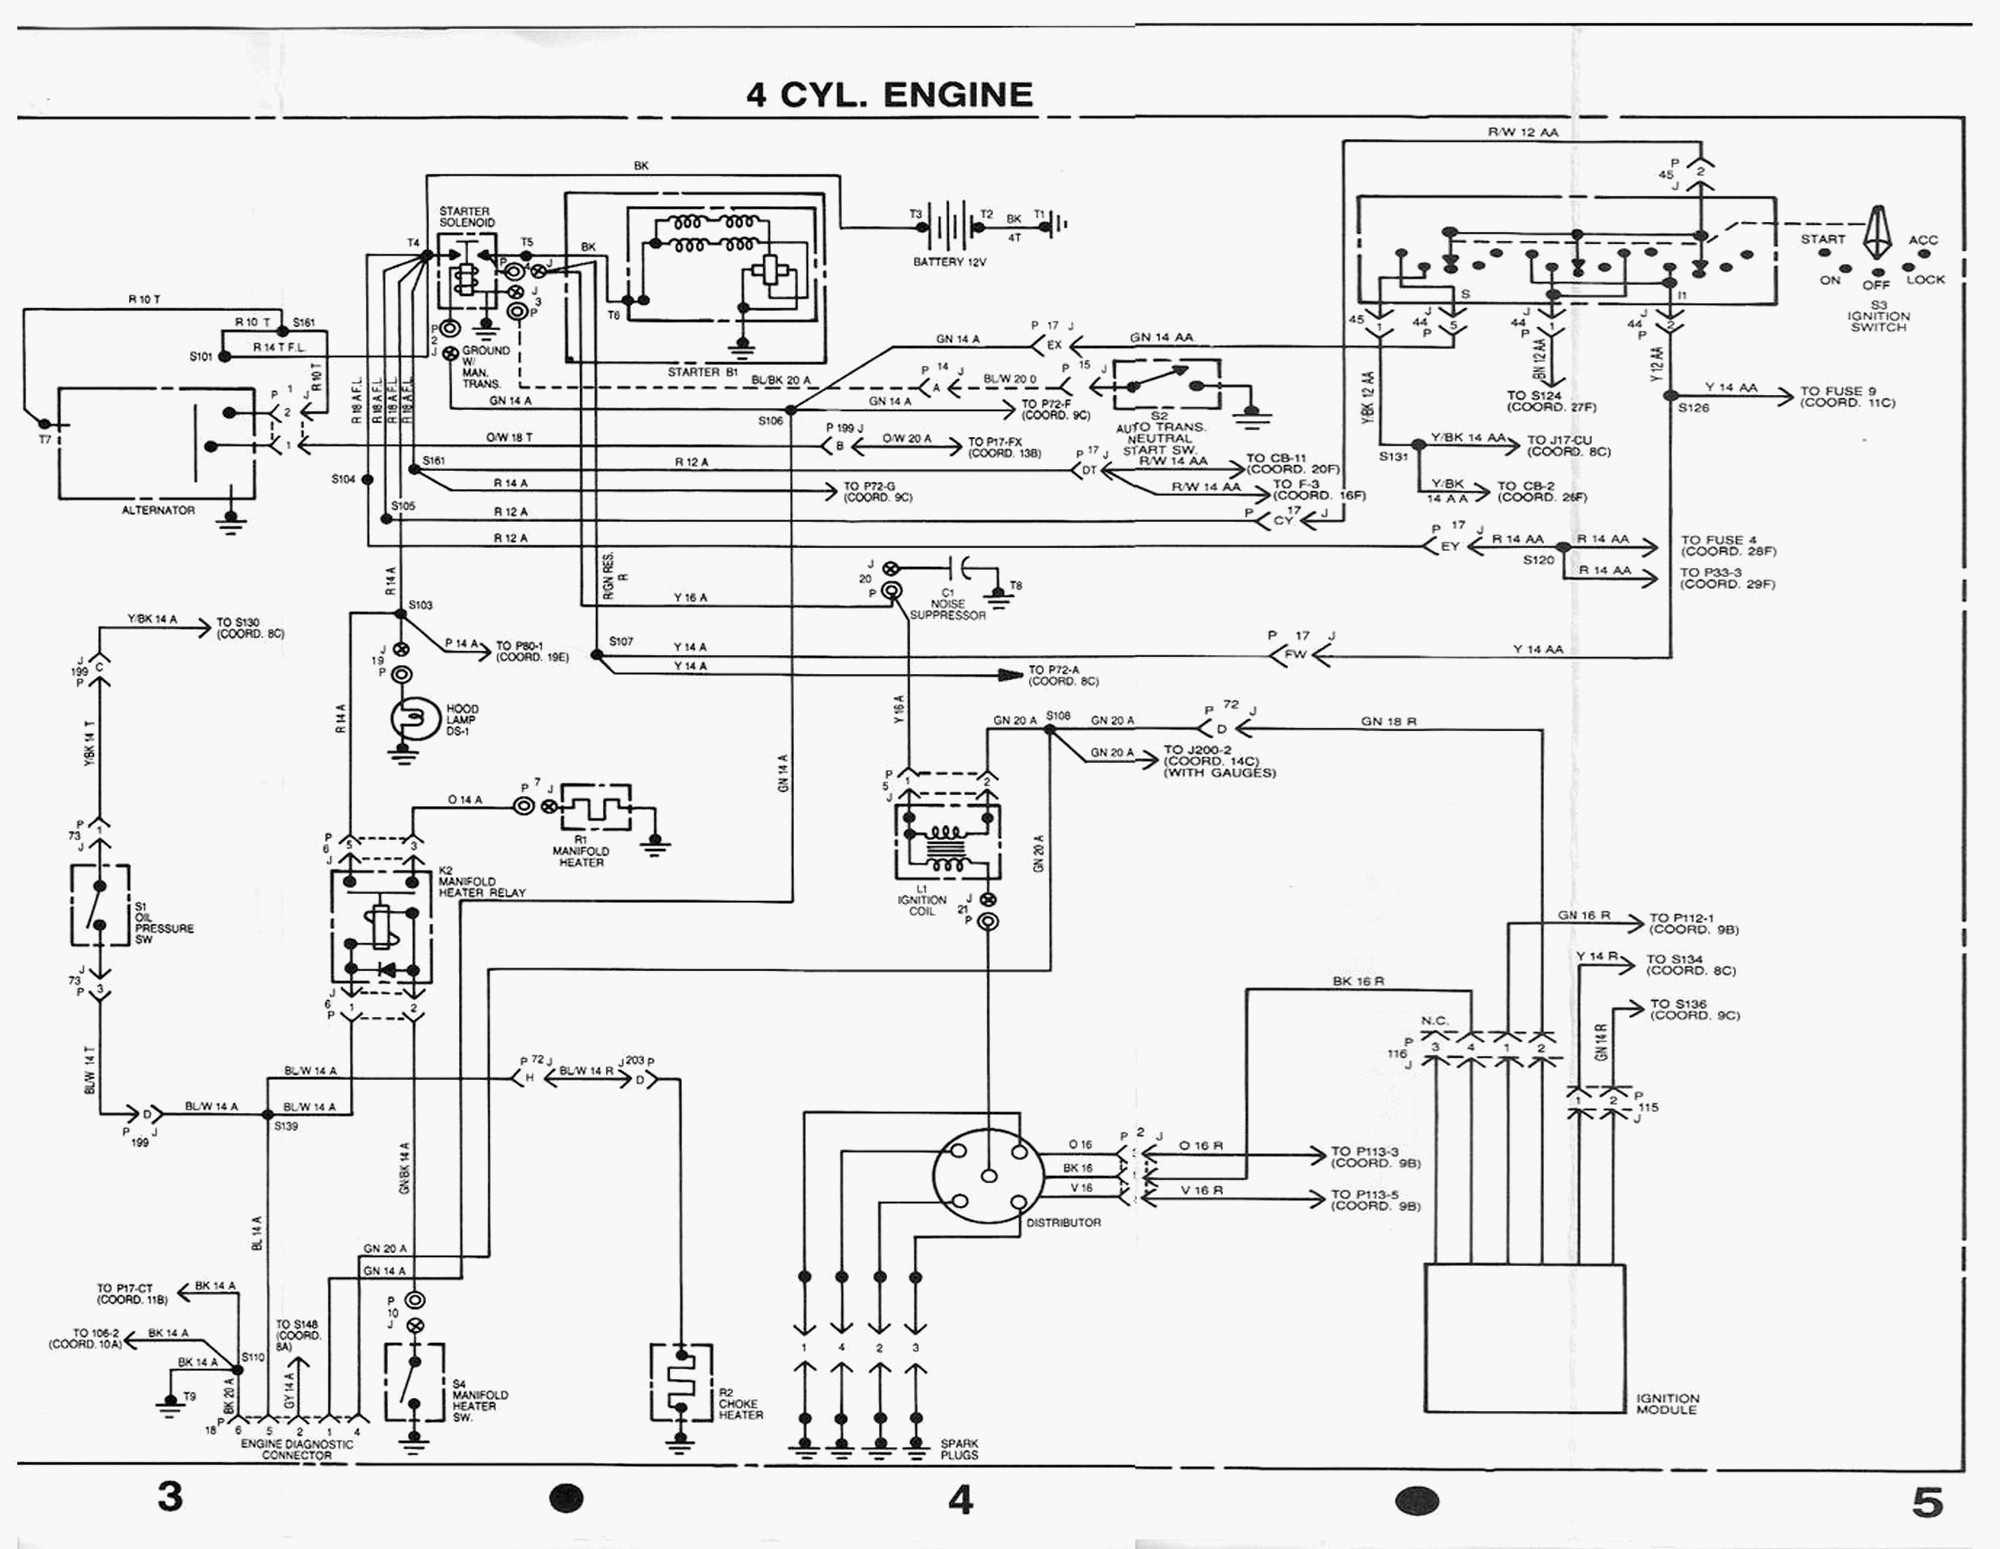 Jeep Comanche Wiring Diagram : 28 Wiring Diagram Images